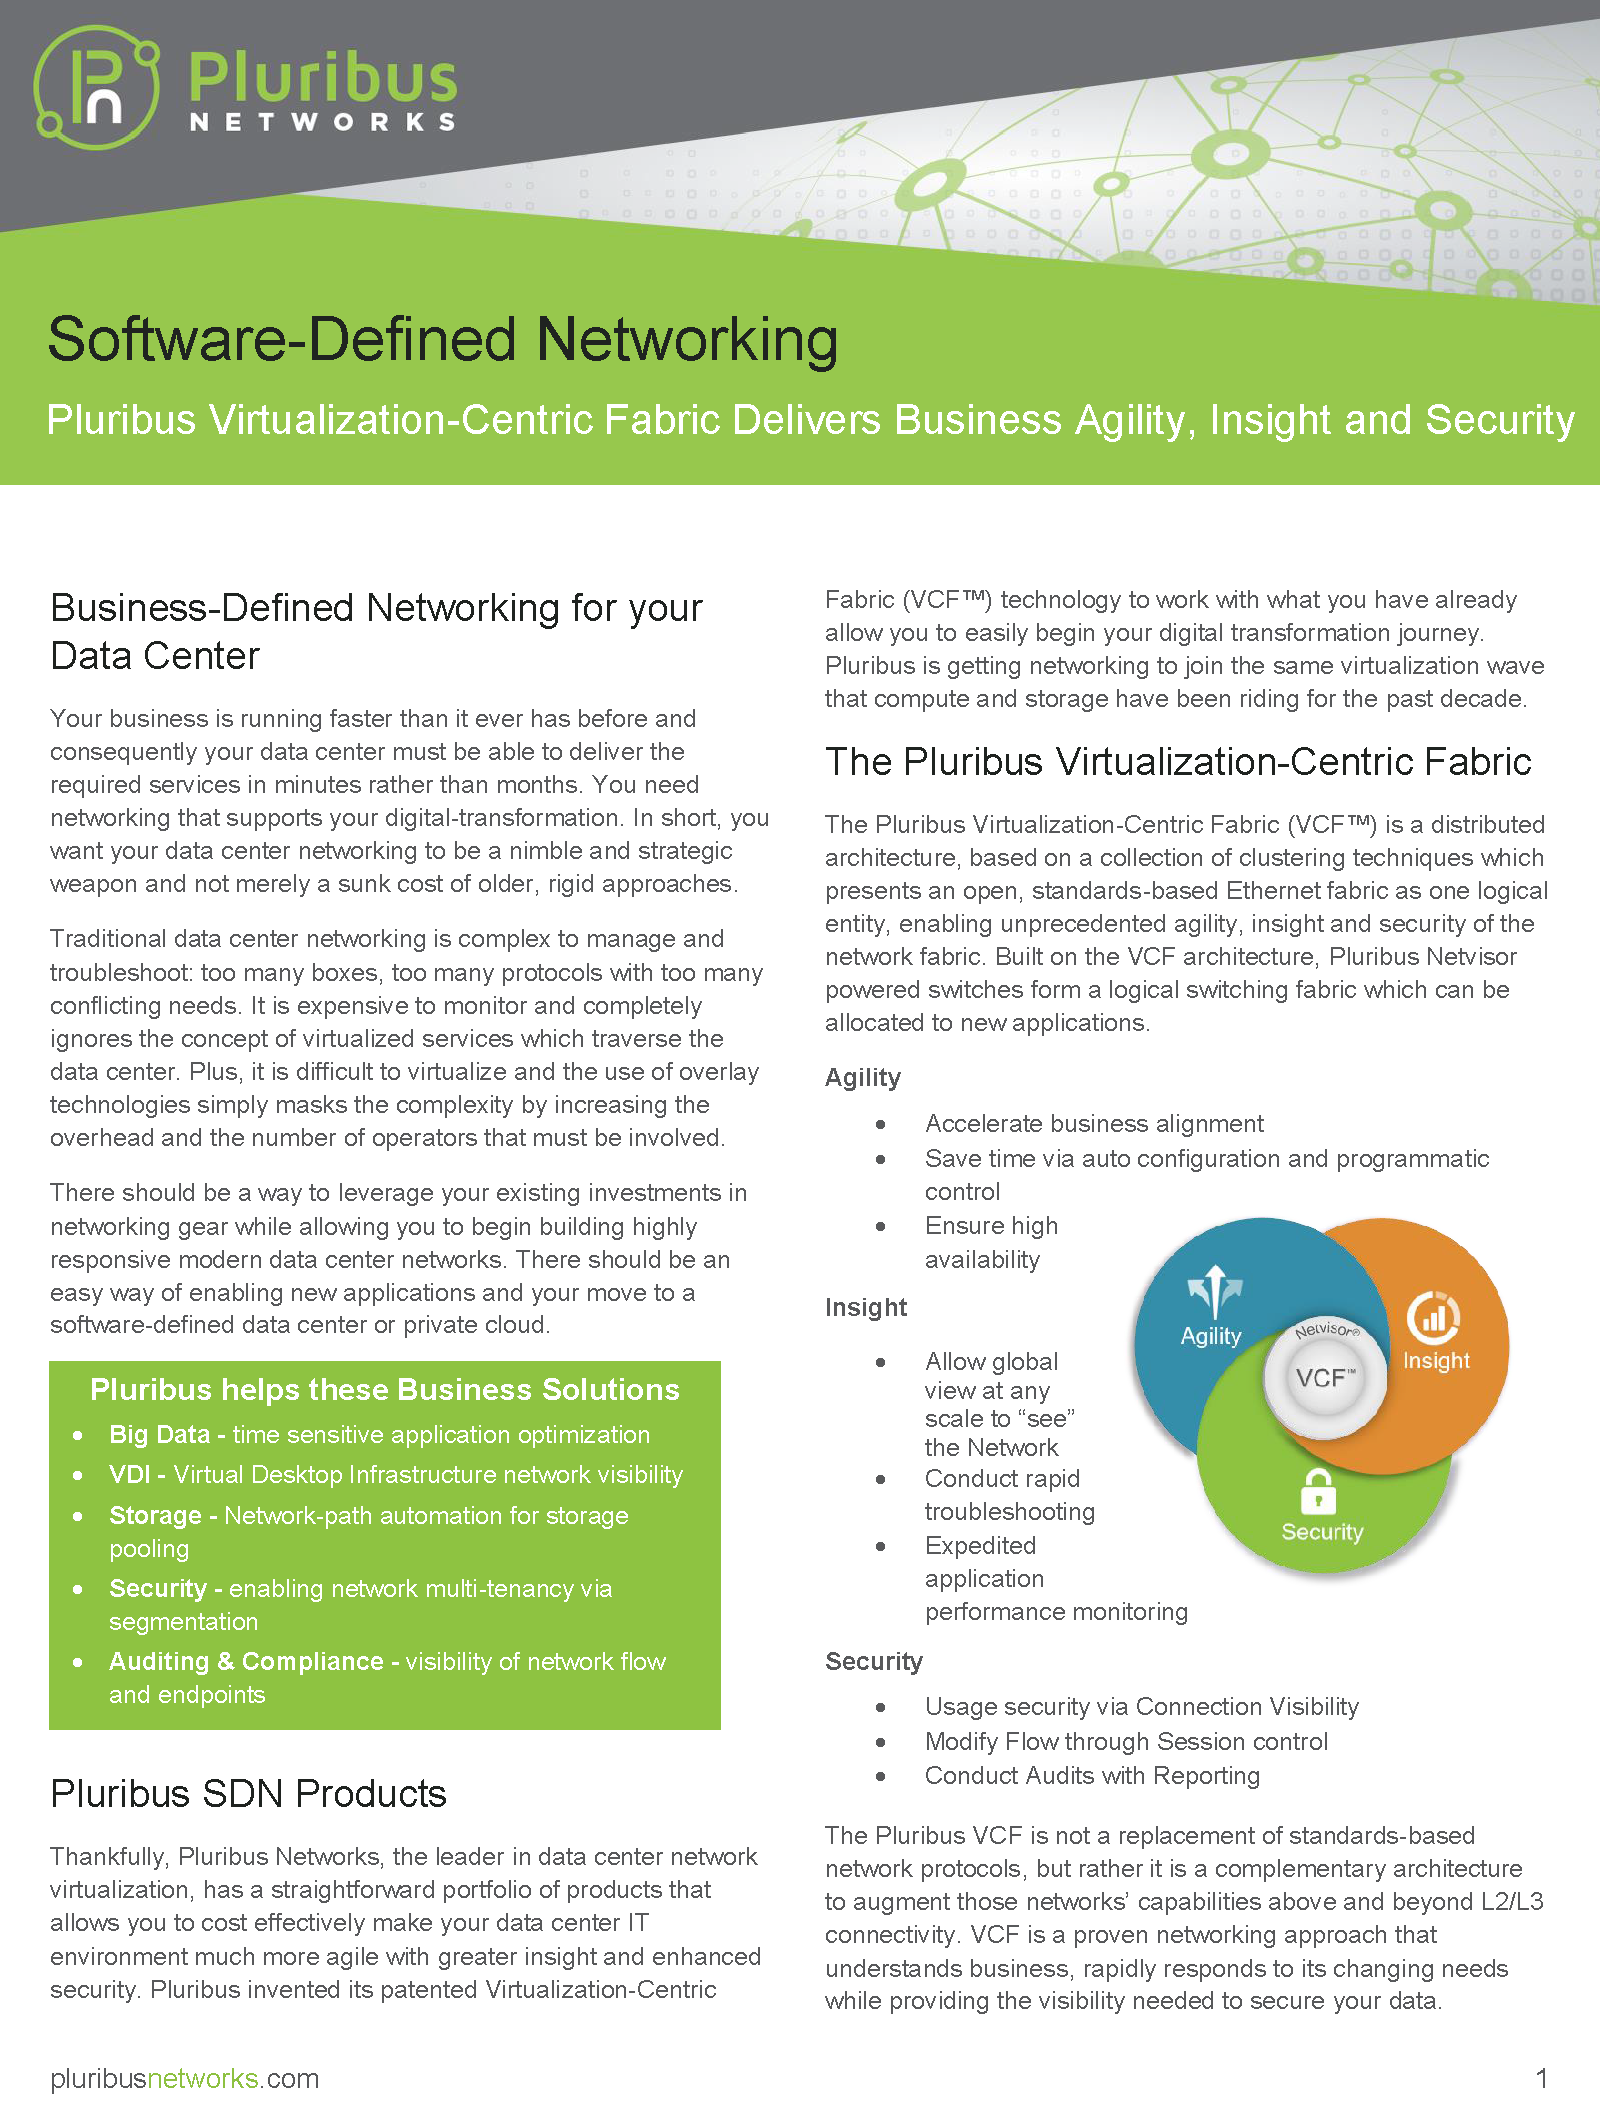 Pluribus Networks Product Brief - thumb